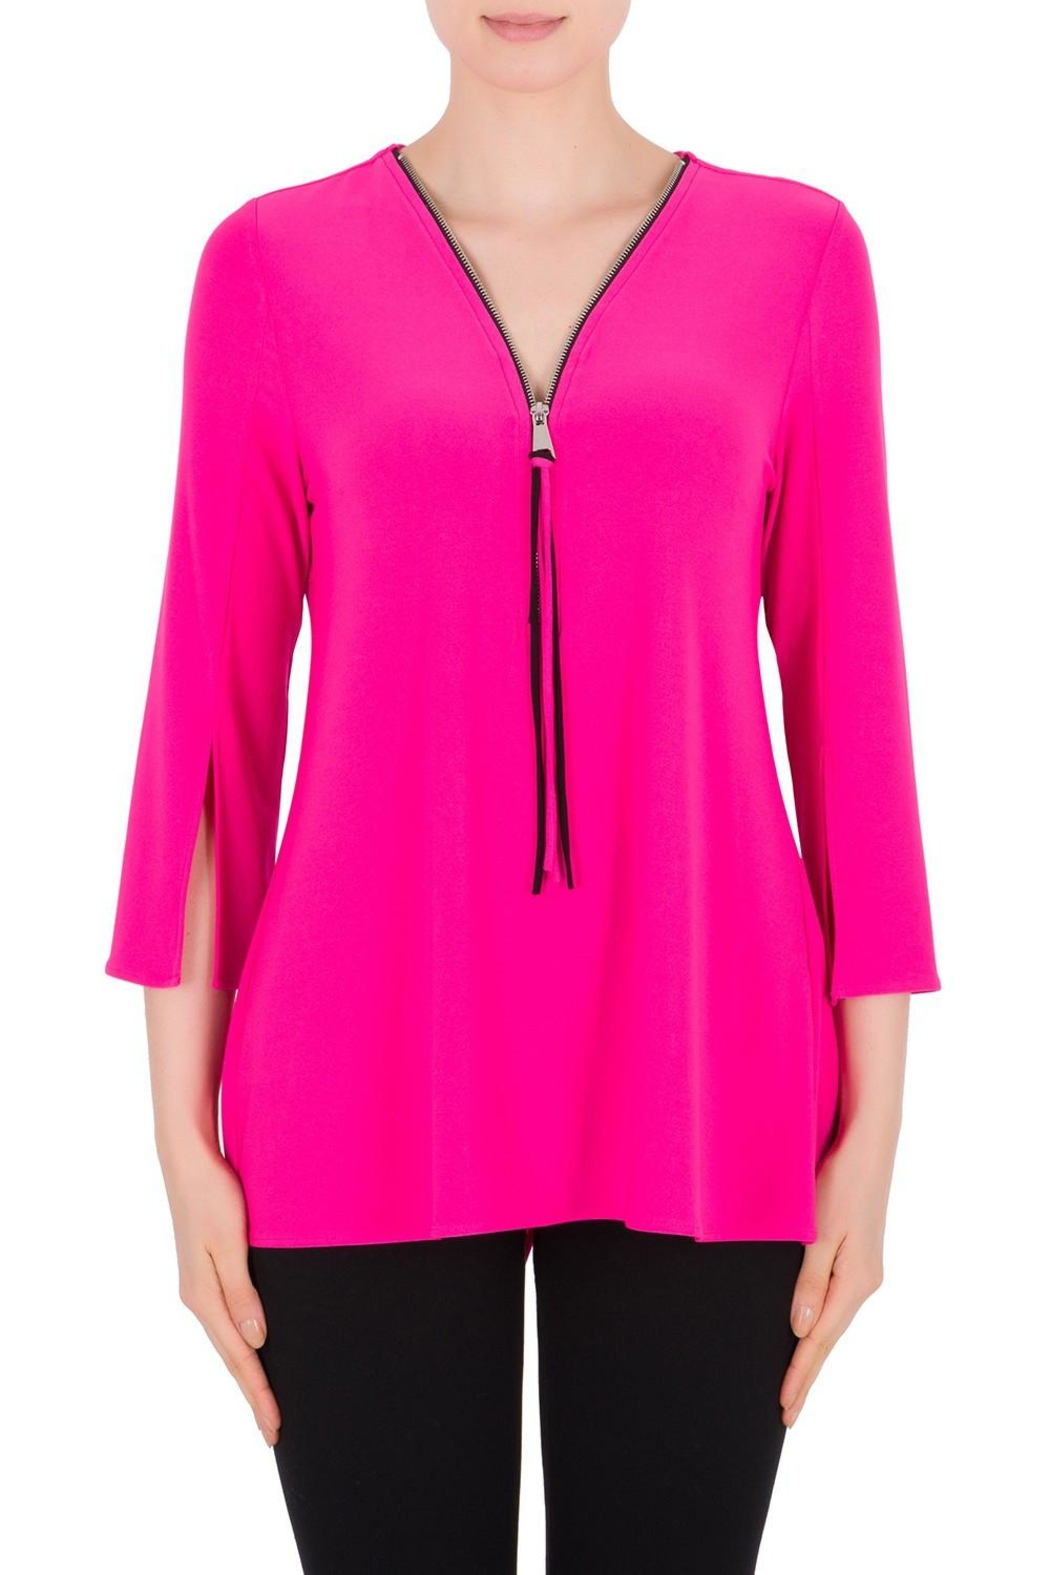 Joseph Ribkoff Neon Pink Top - Front Cropped Image